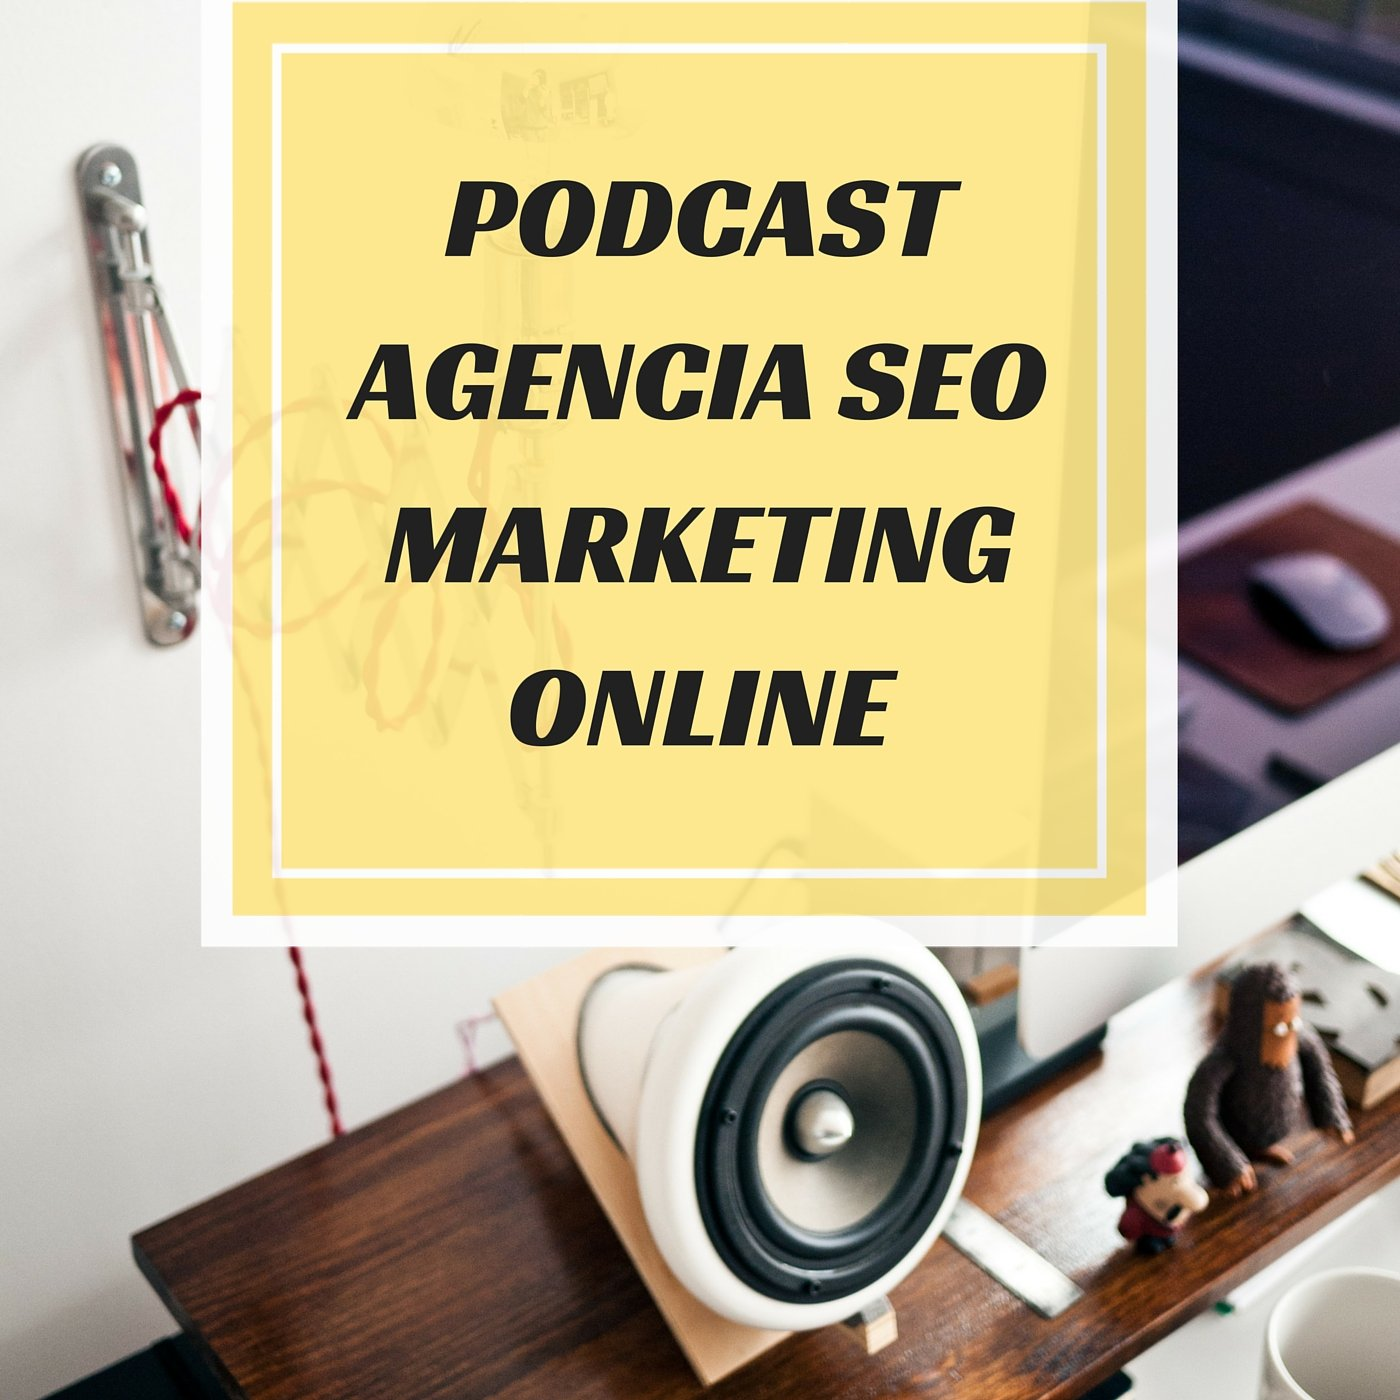 Podcast Agencia SEO marketing online